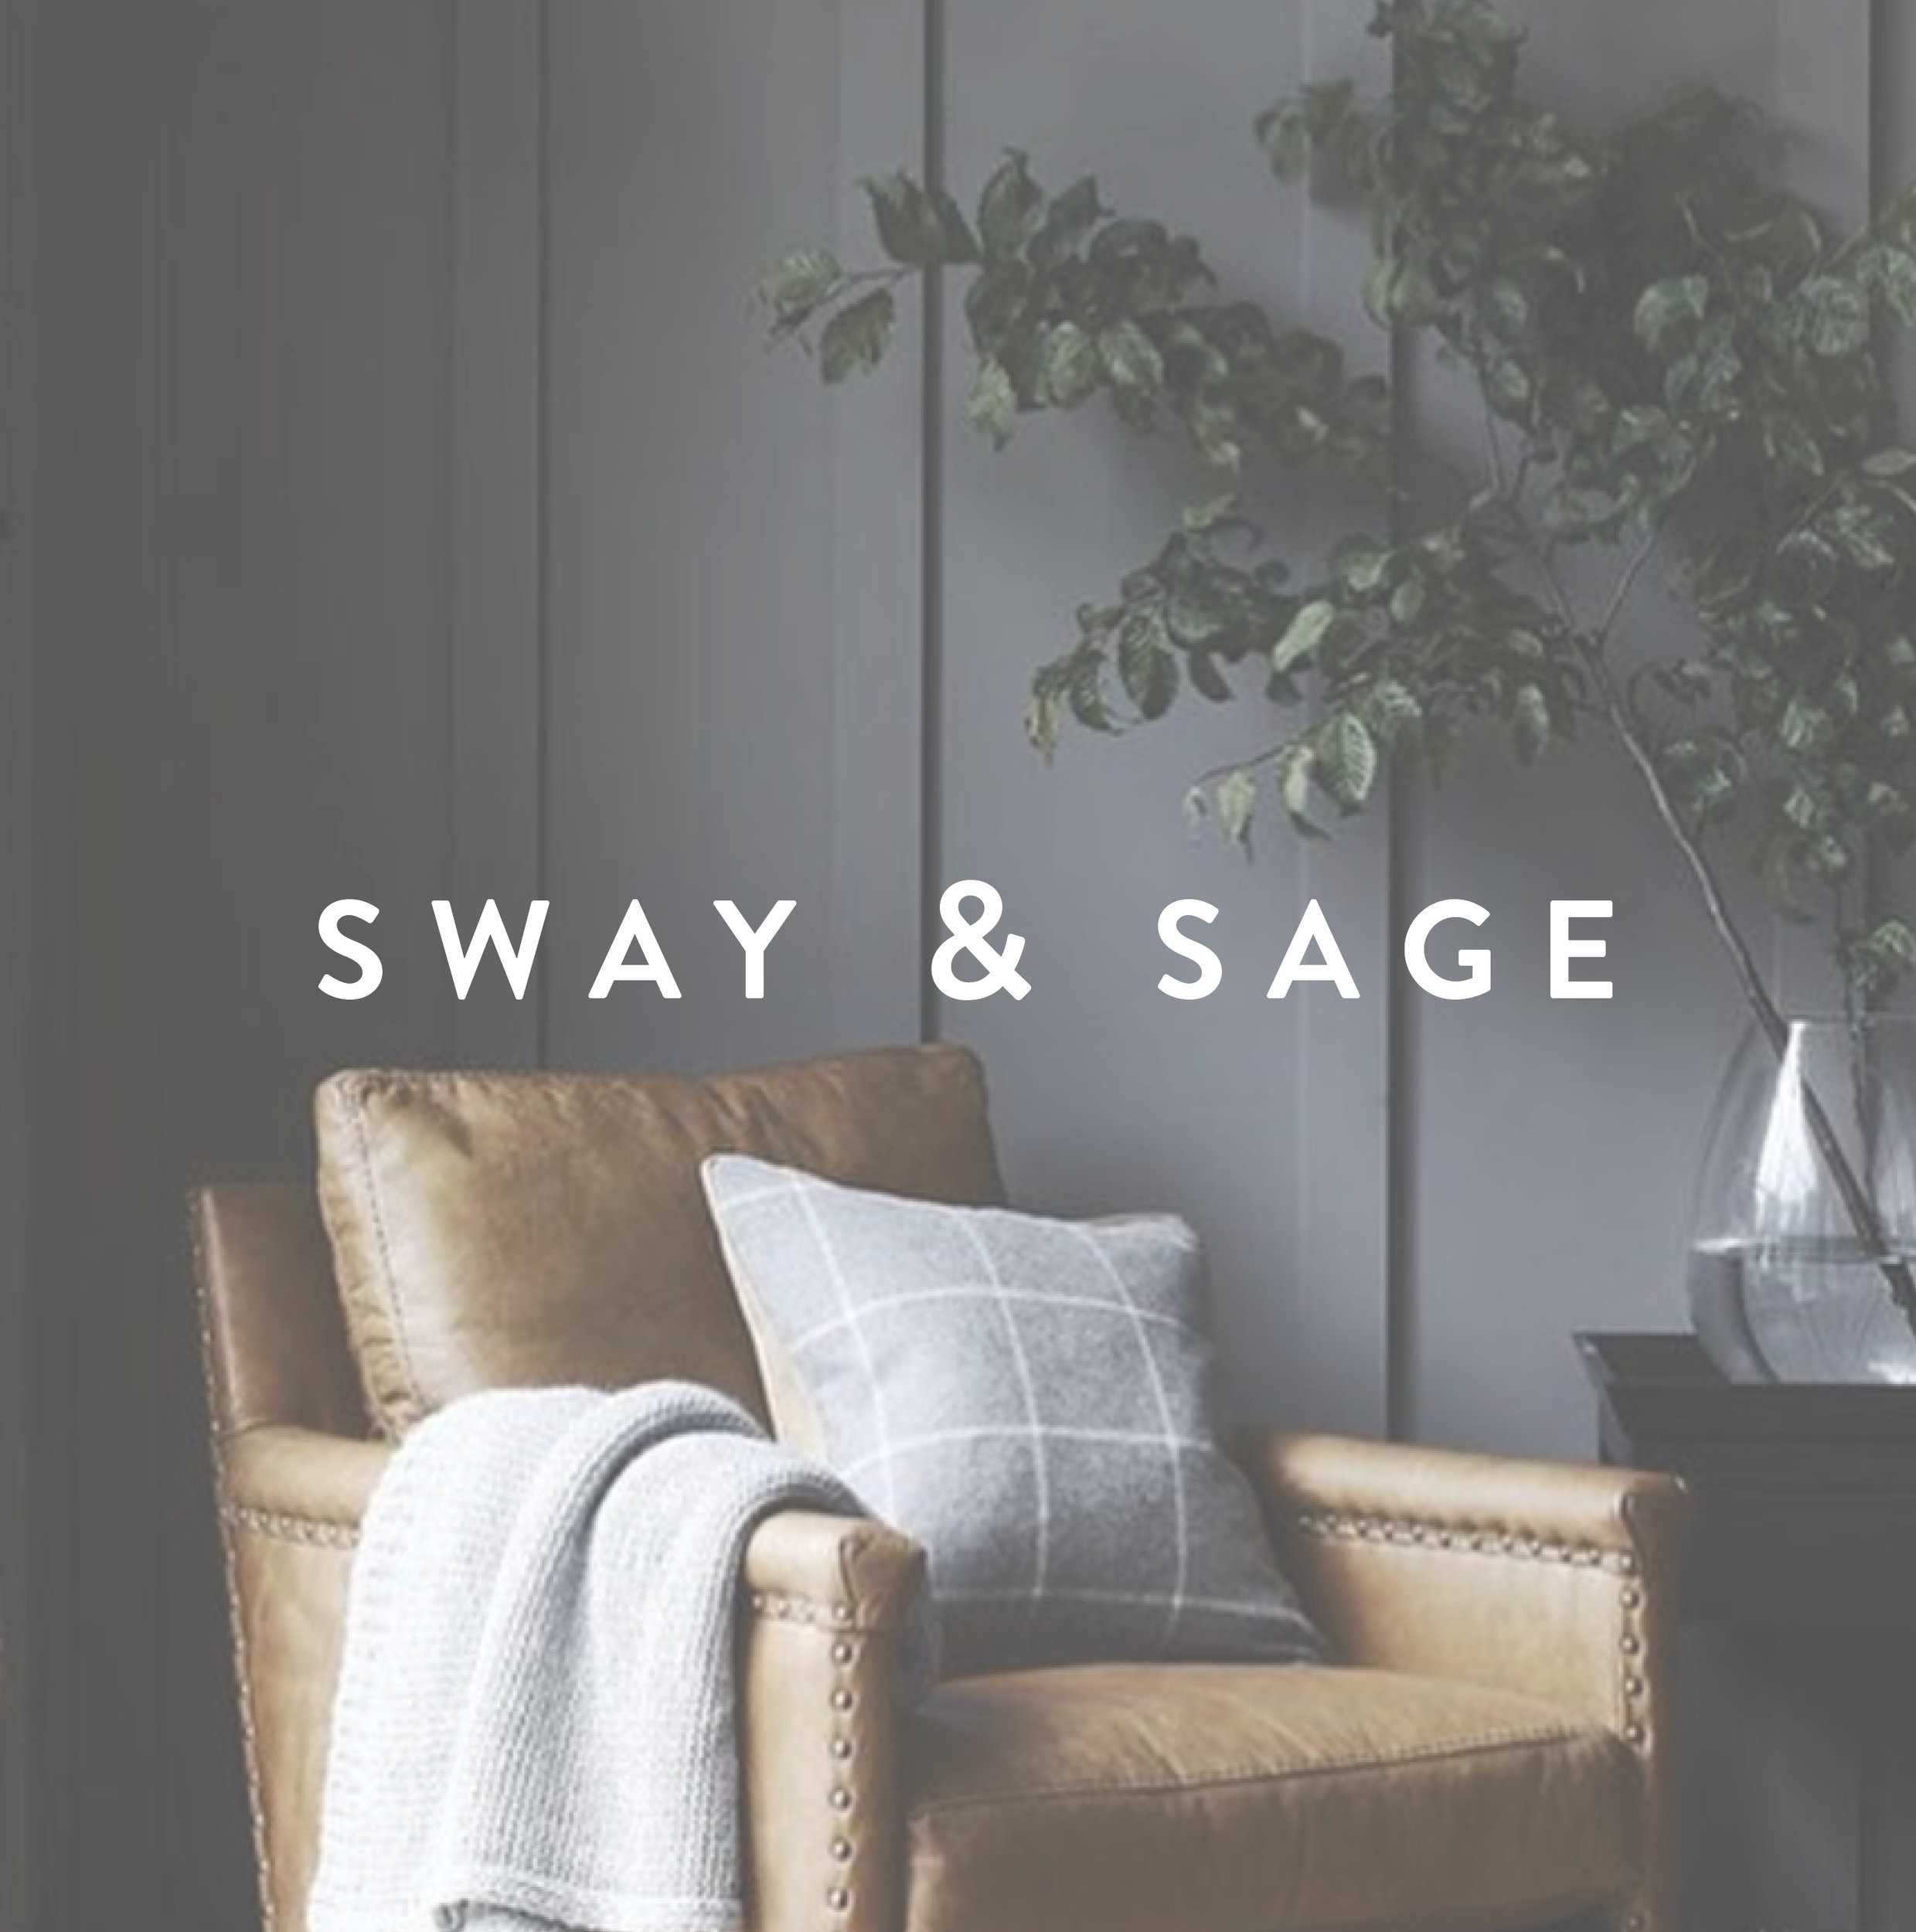 sway and sage square.jpg